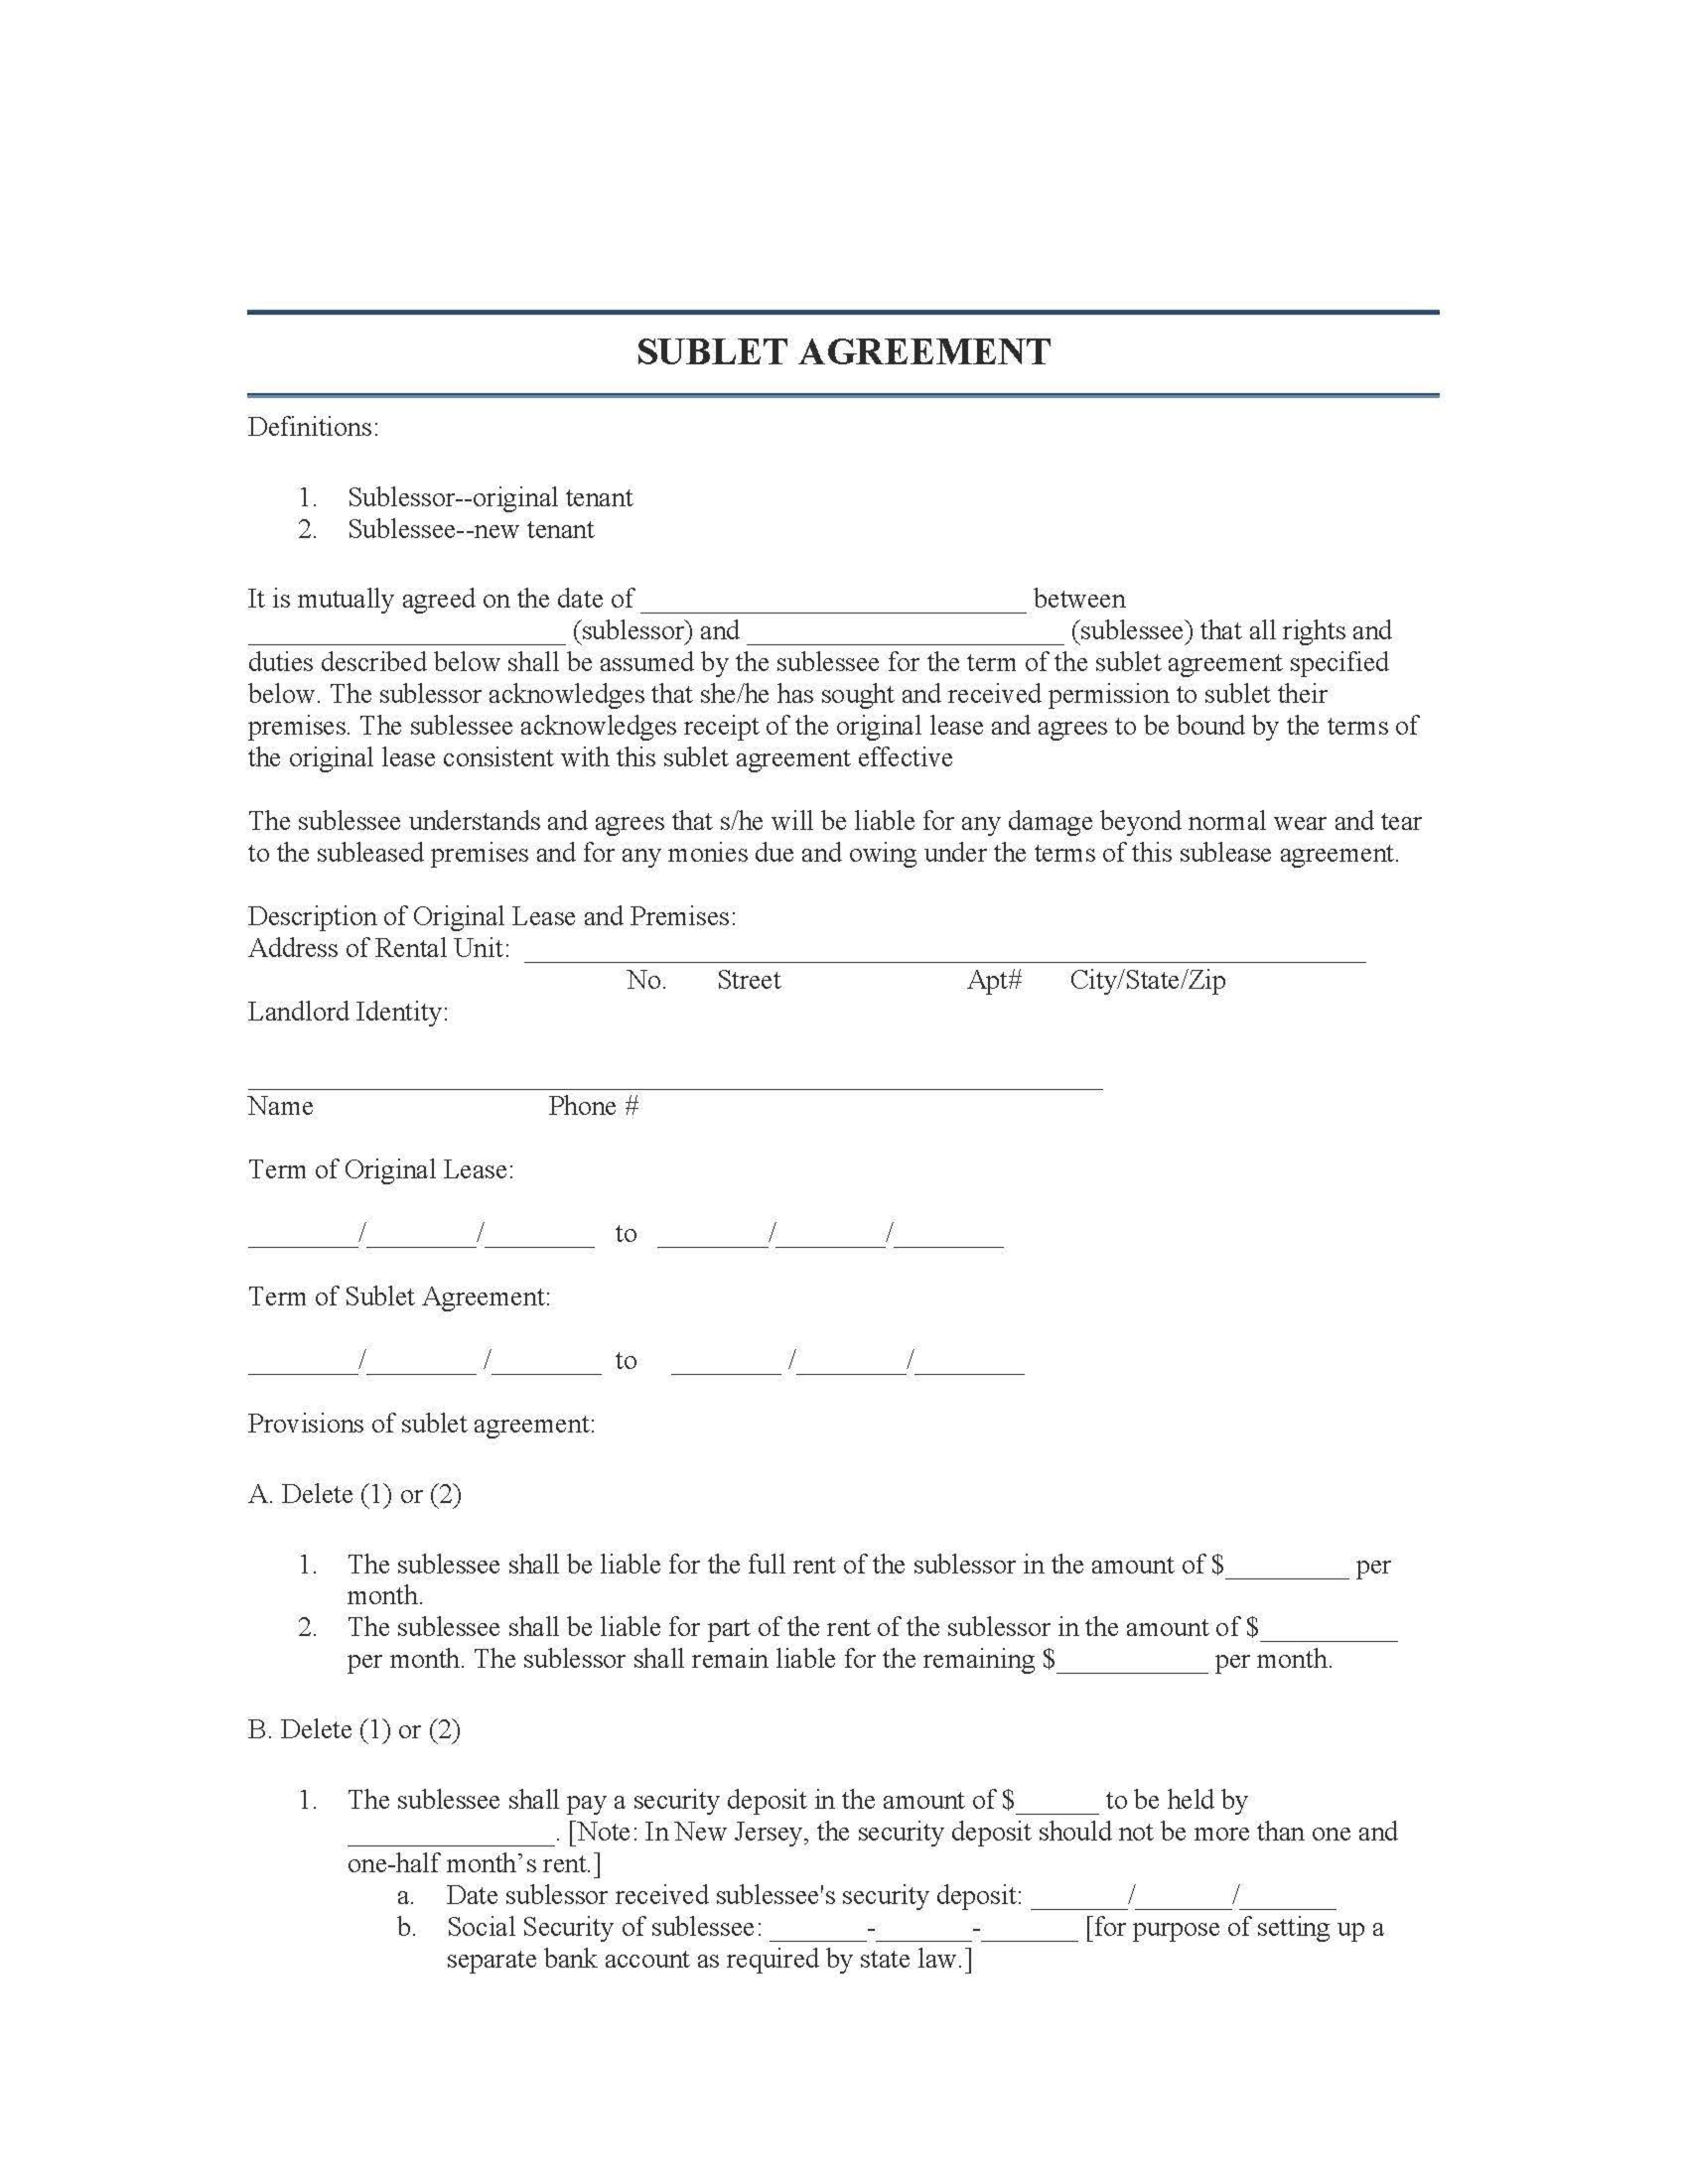 New Jersey Sublease Agreement – Sublet Agreements